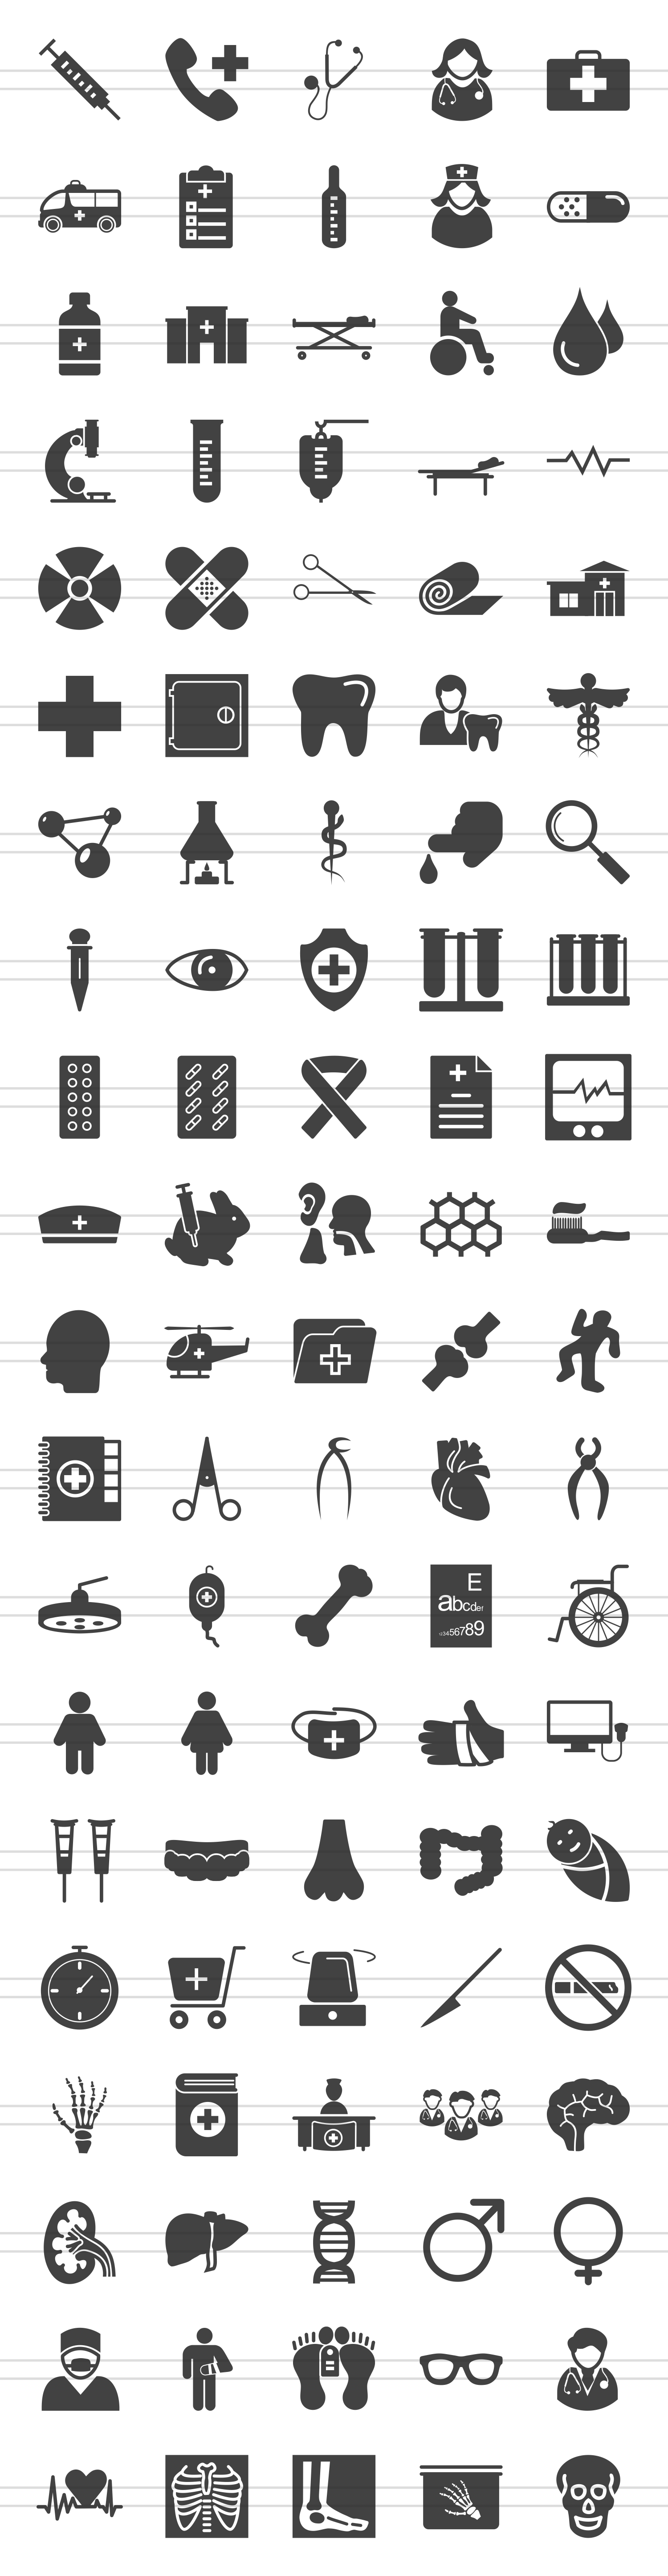 100 Medical General Glyph Icons example image 2